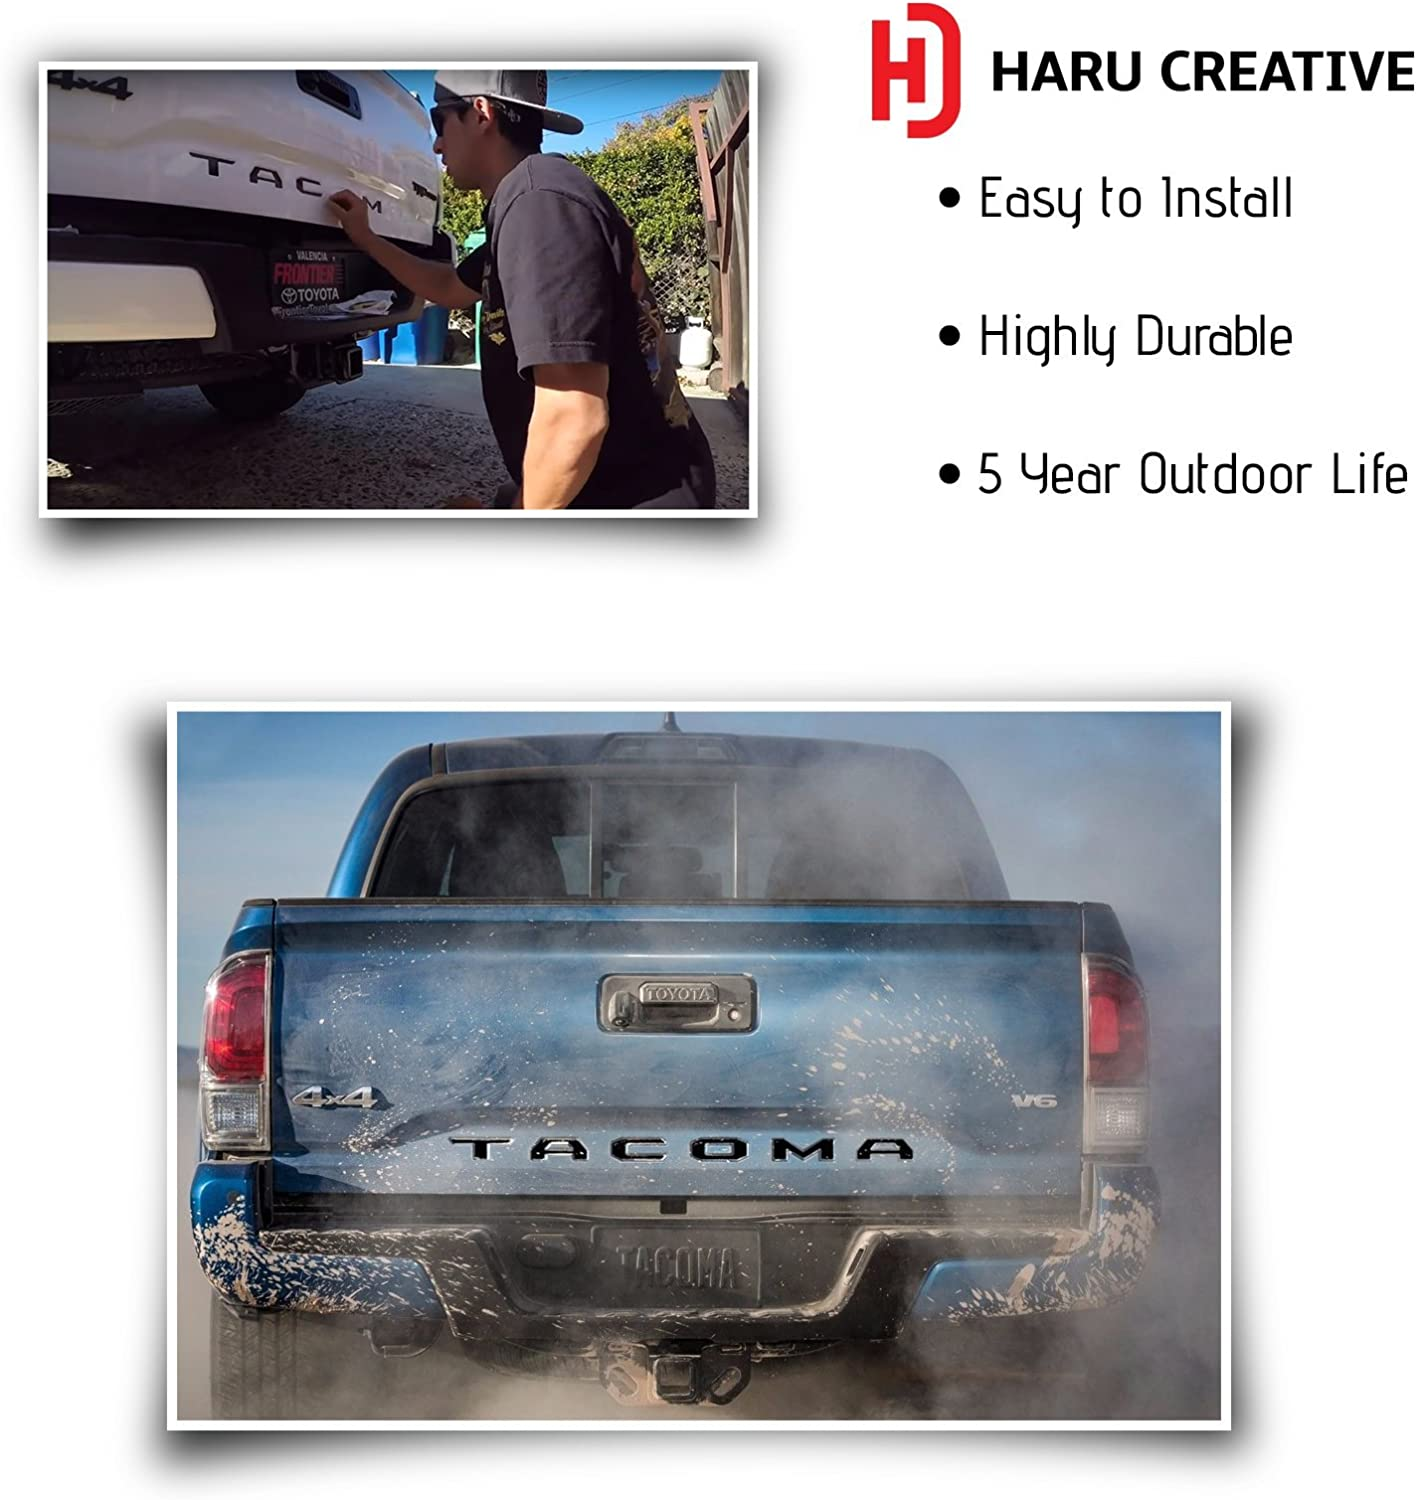 Matte Black Haru Creative Rear Trunk Tailgate Letter Insert Decal Sticker Compatible with and Fits Toyota Tacoma 2016 2017 2018 2019